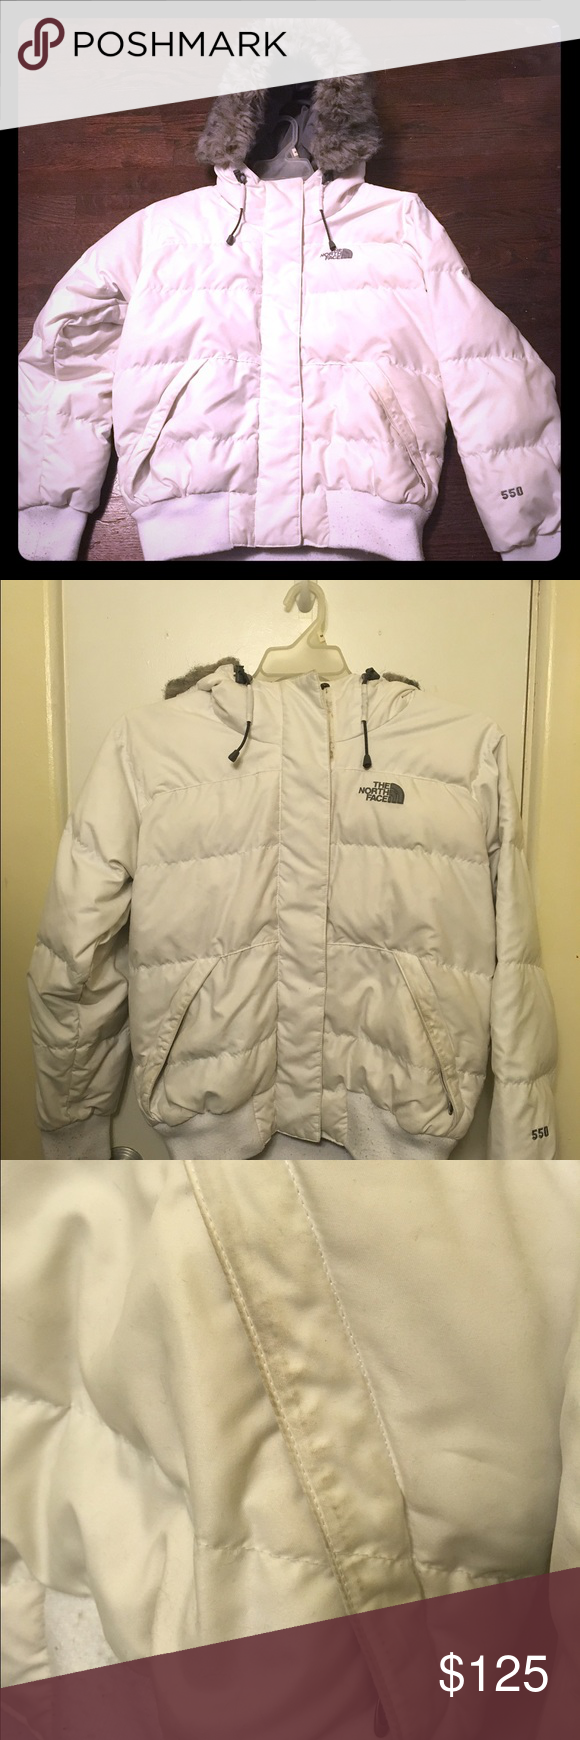 The North Face 550 Puffer Coat With Hood This Is The Warmest Coat I Ve Ever Owned I Was Outside When It Wa Puffer Coat With Hood North Face Jacket Puffer Coat [ 1740 x 580 Pixel ]